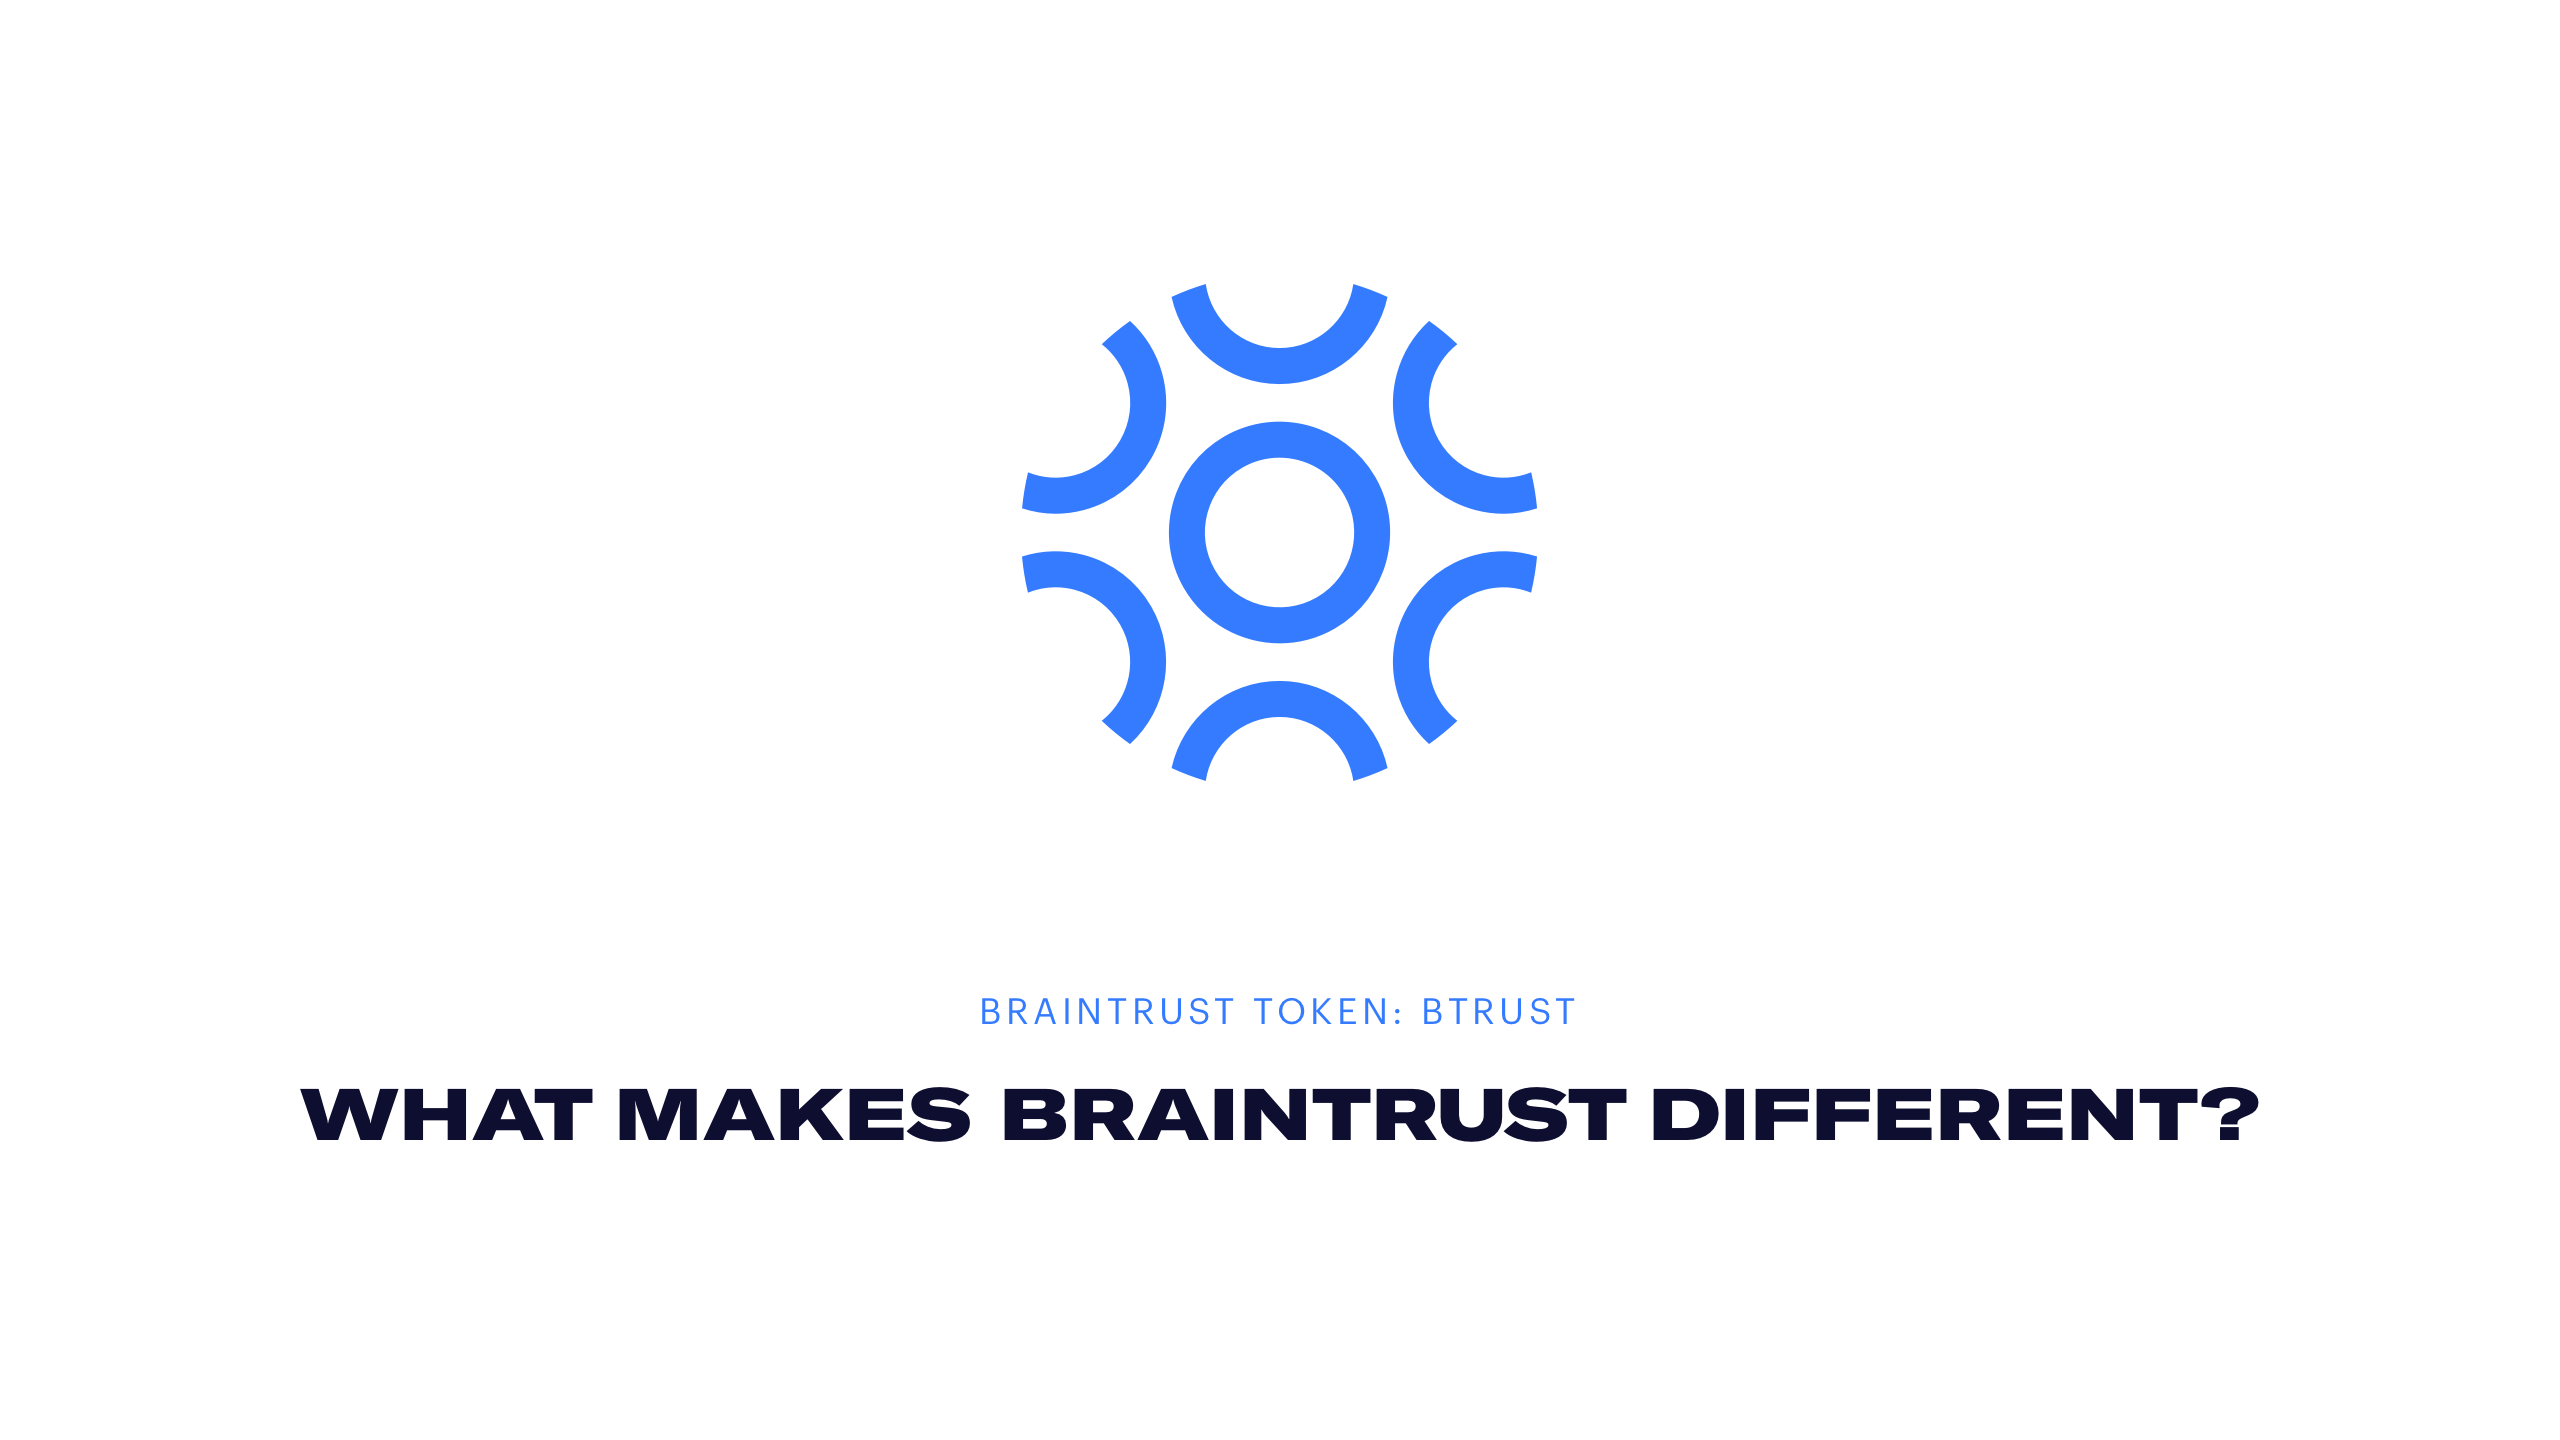 BTRUST - What makes Braintrust different?